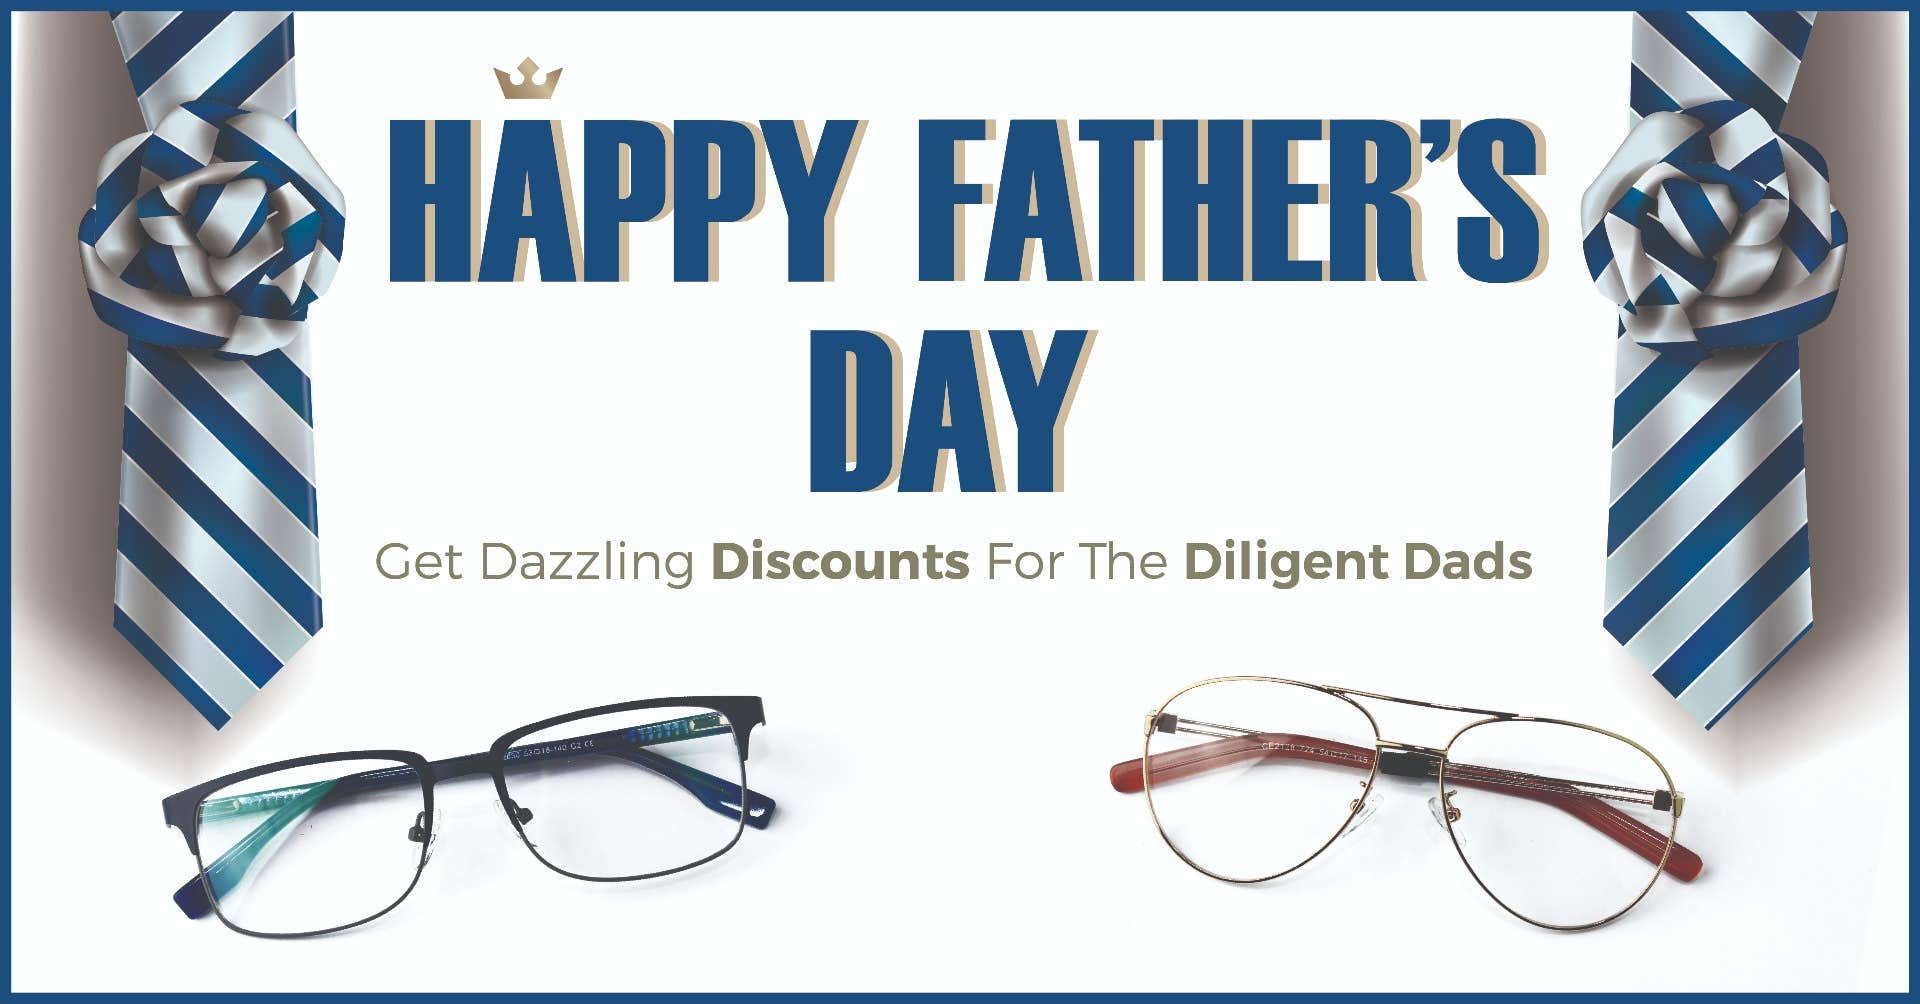 Happy Father's Day: Get Dazzling Discounts For The Diligent Dads